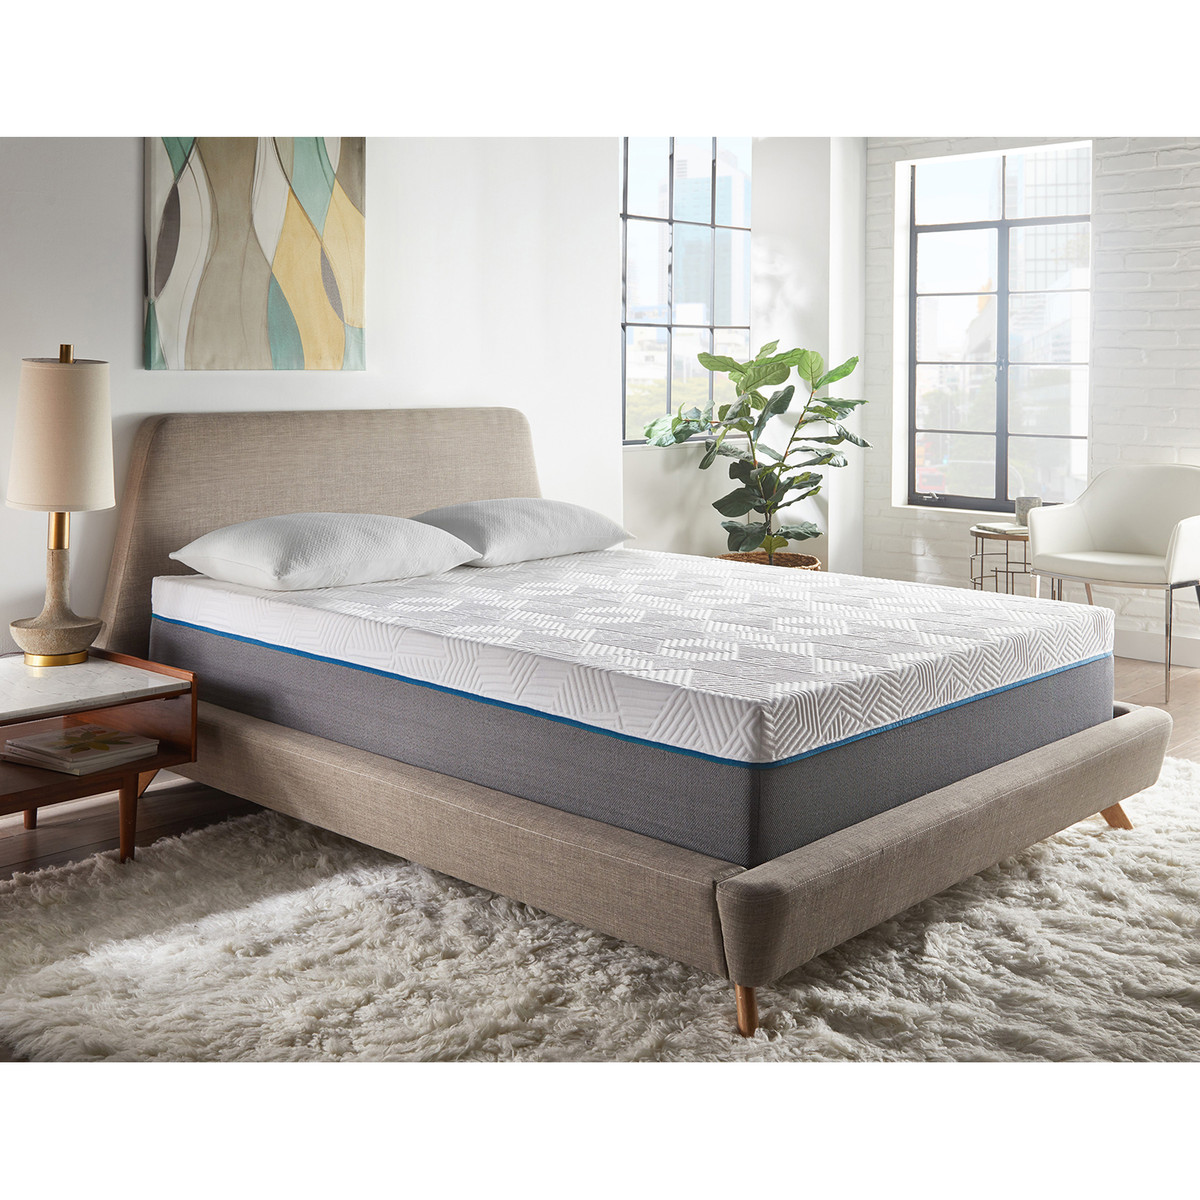 Renue Twelve Inch Memory Foam Mattress and Box